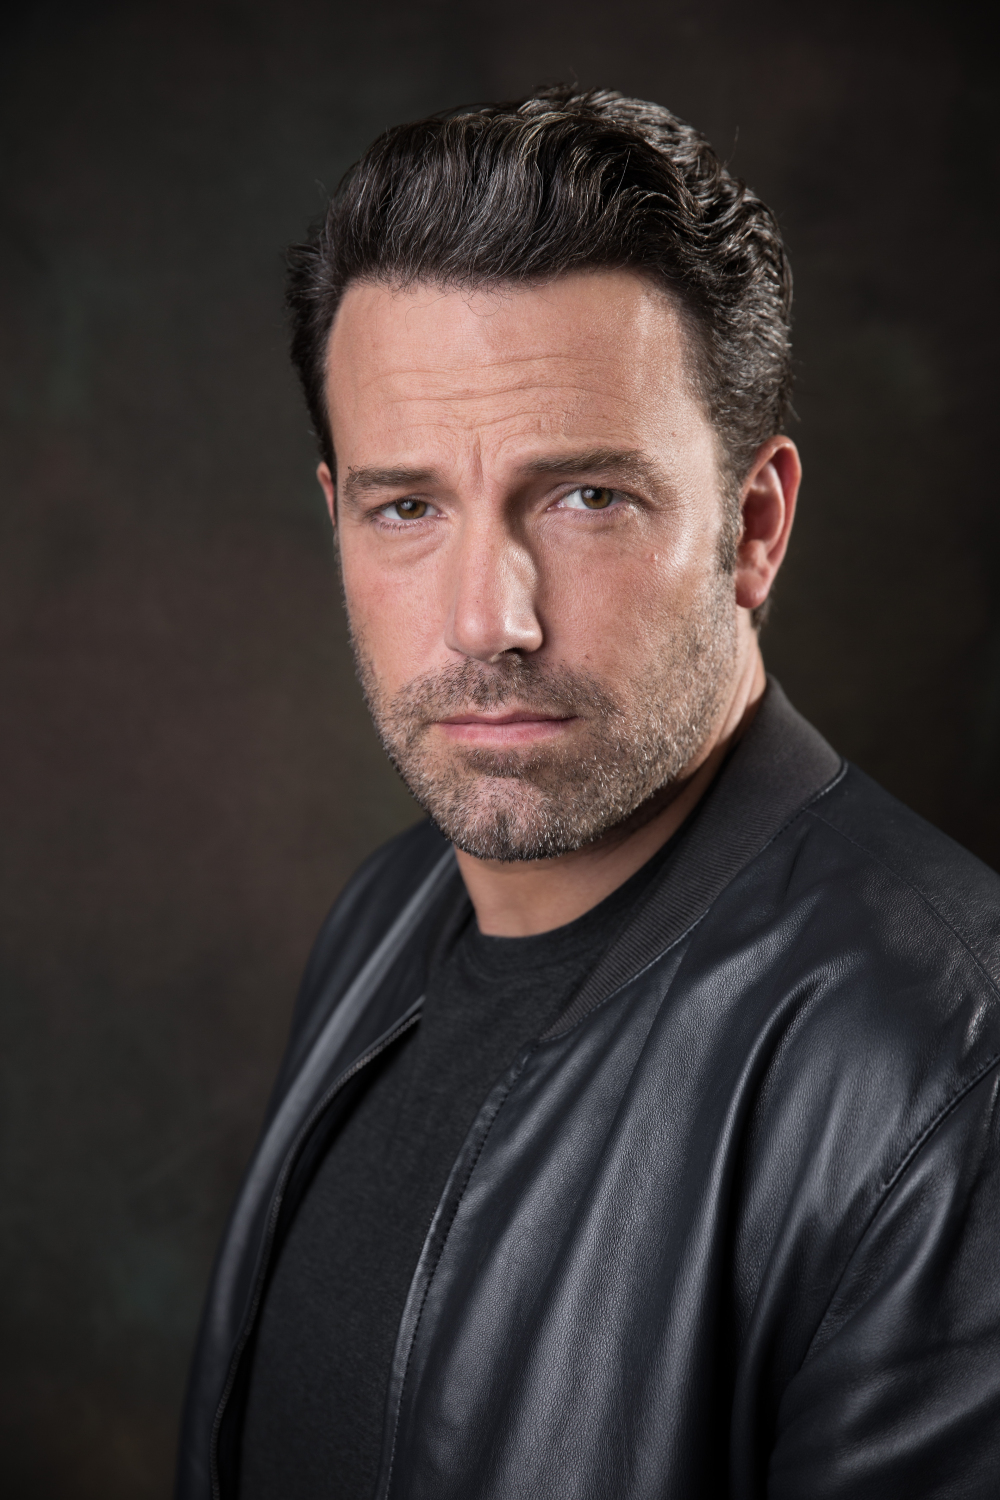 22 Most Popular Ben Affleck Images and Photos Ben Affleck